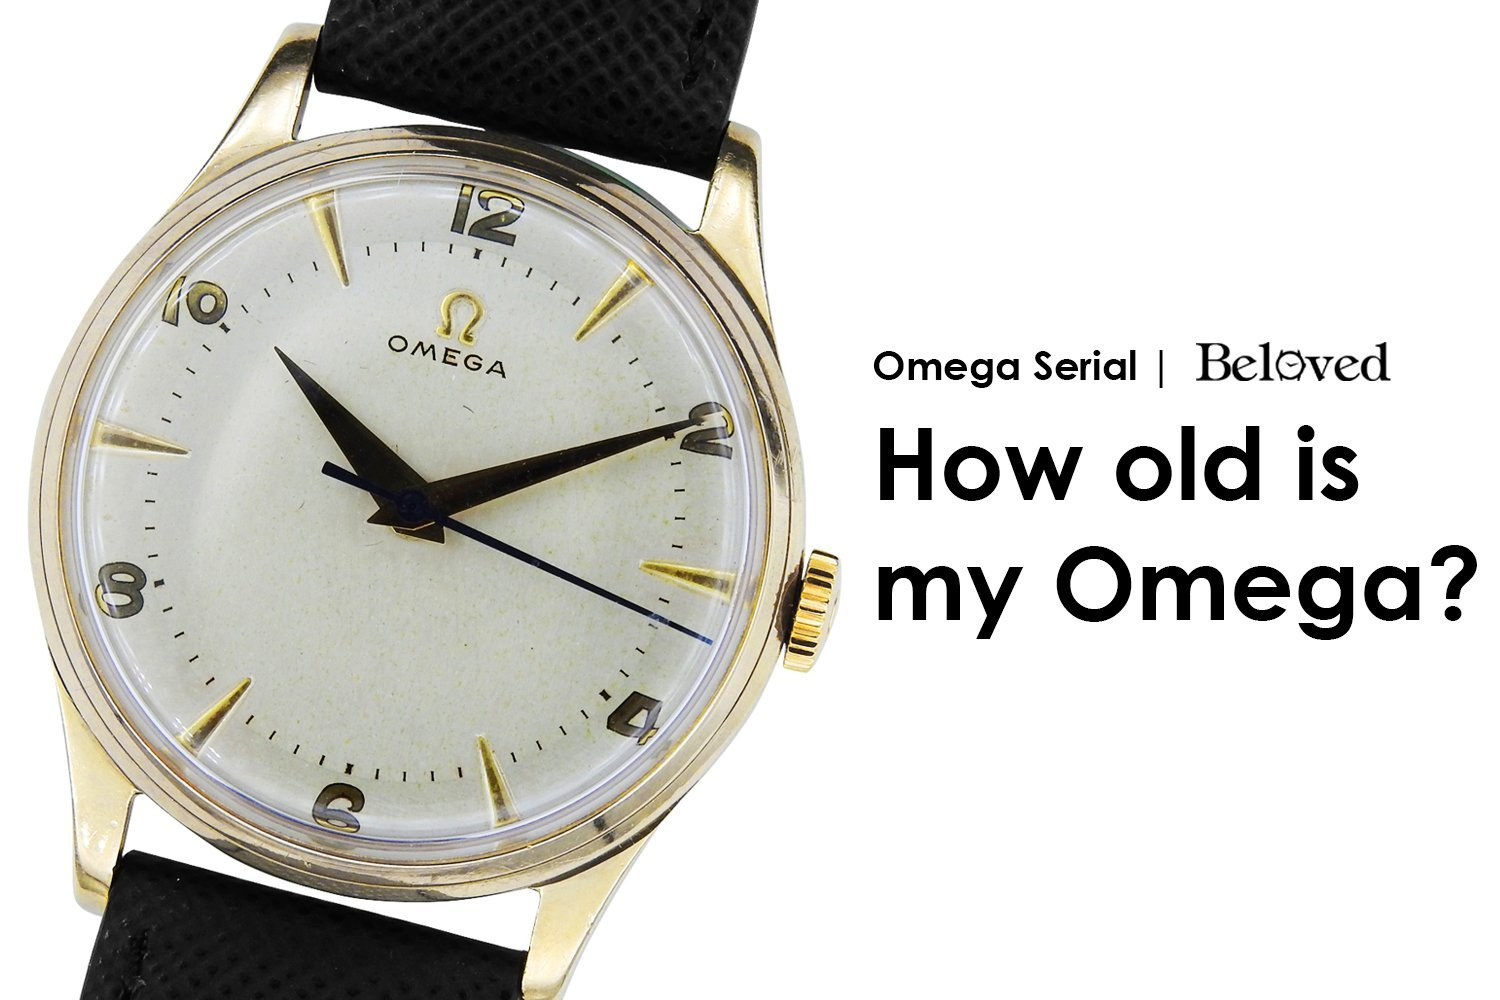 Serial Number Production Year Guide | How old is my Omega?